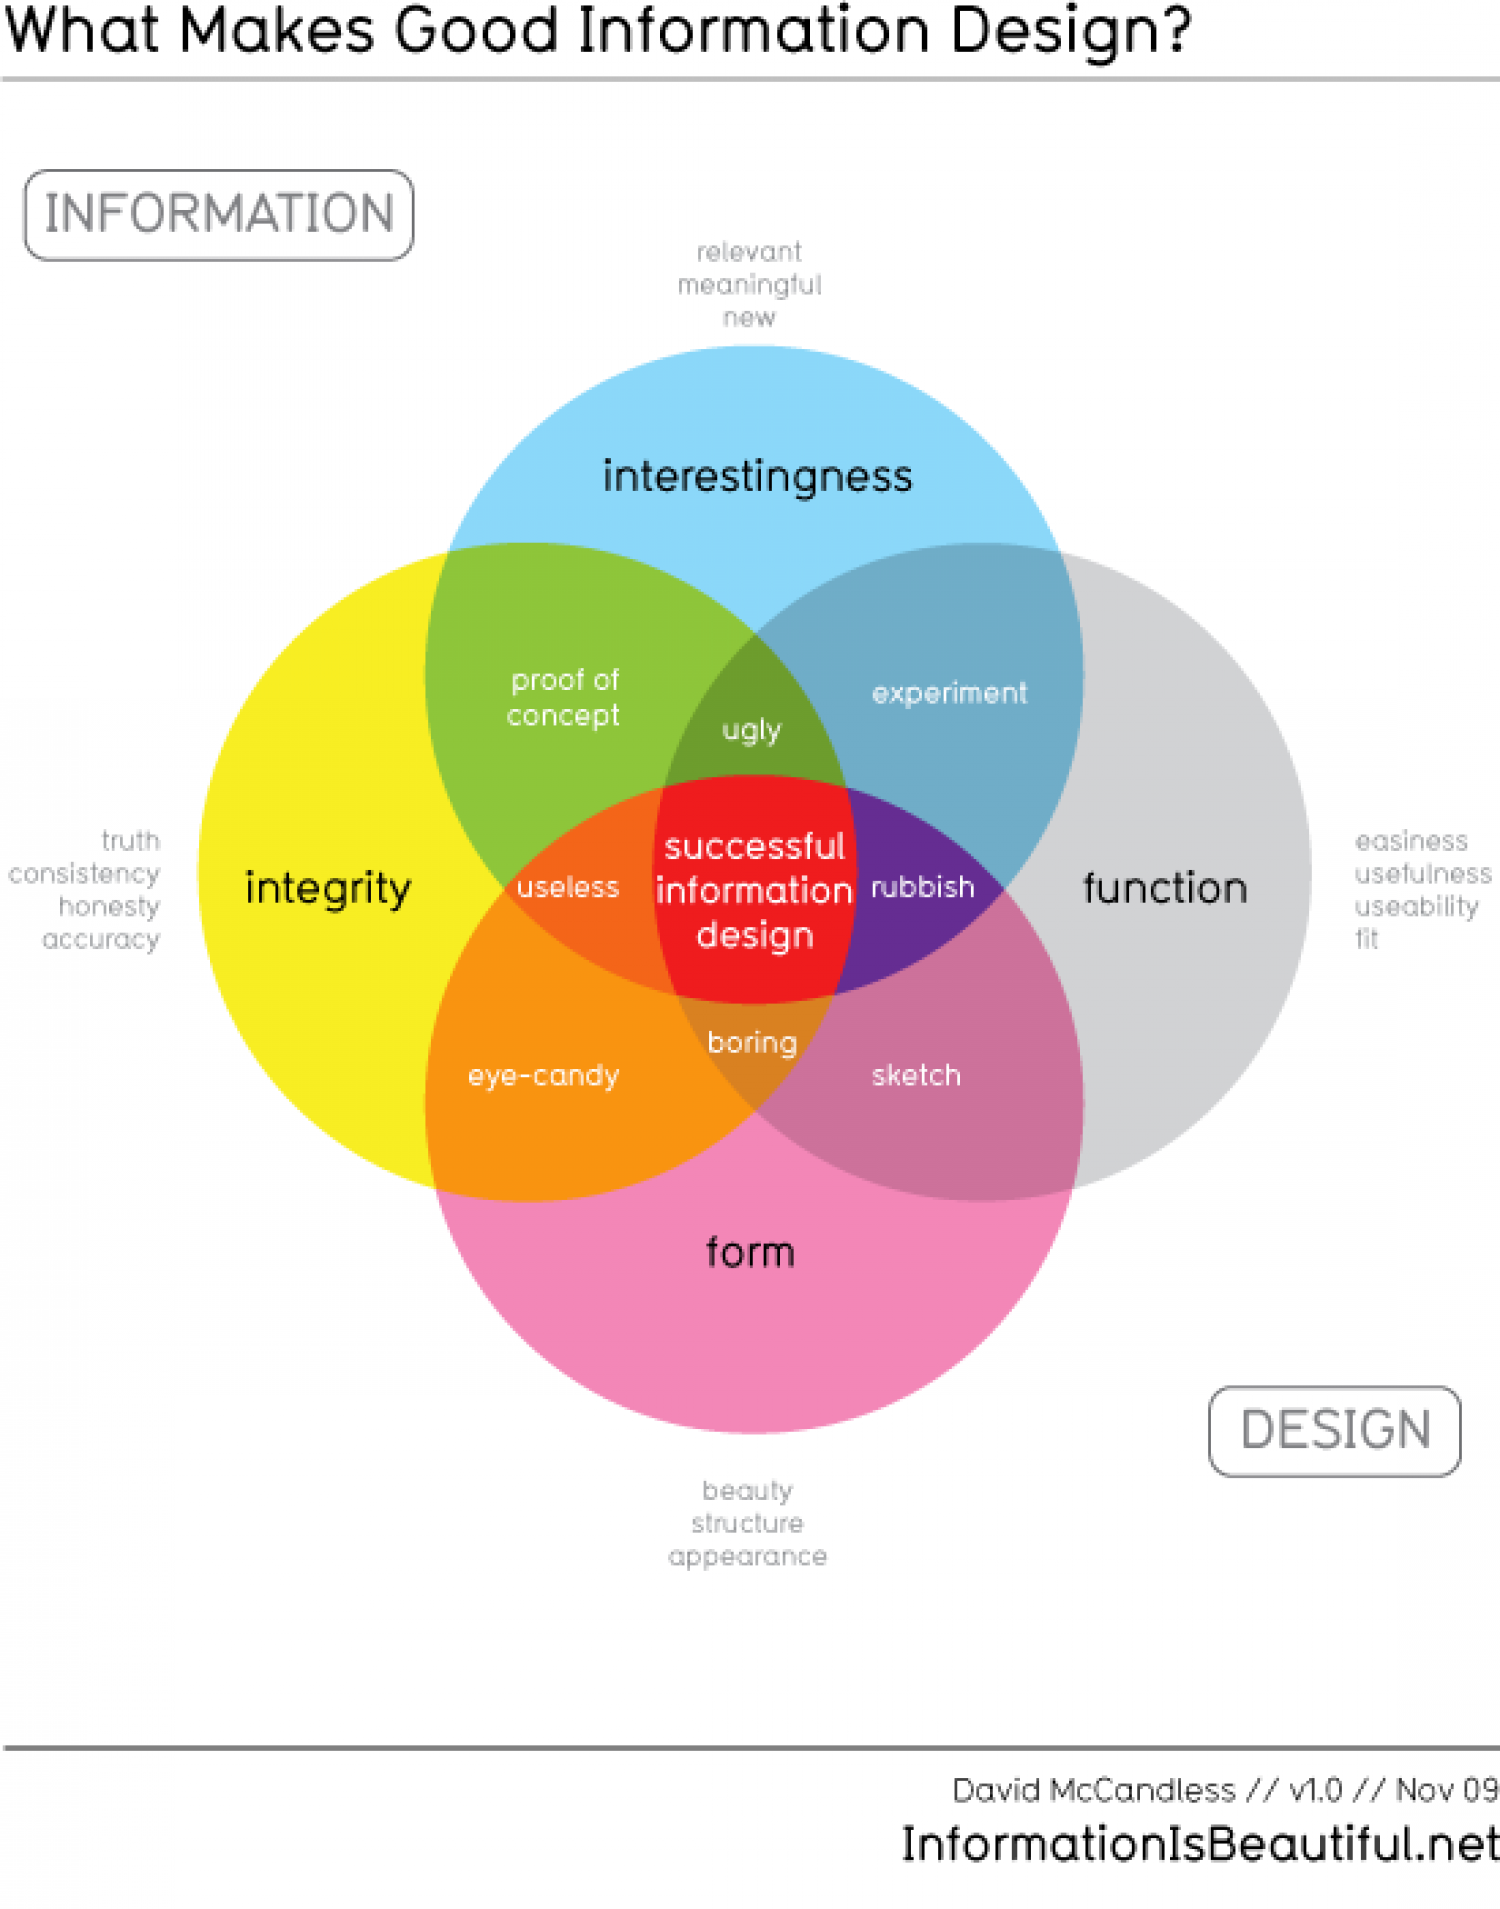 What Makes Good Information Design? Infographic